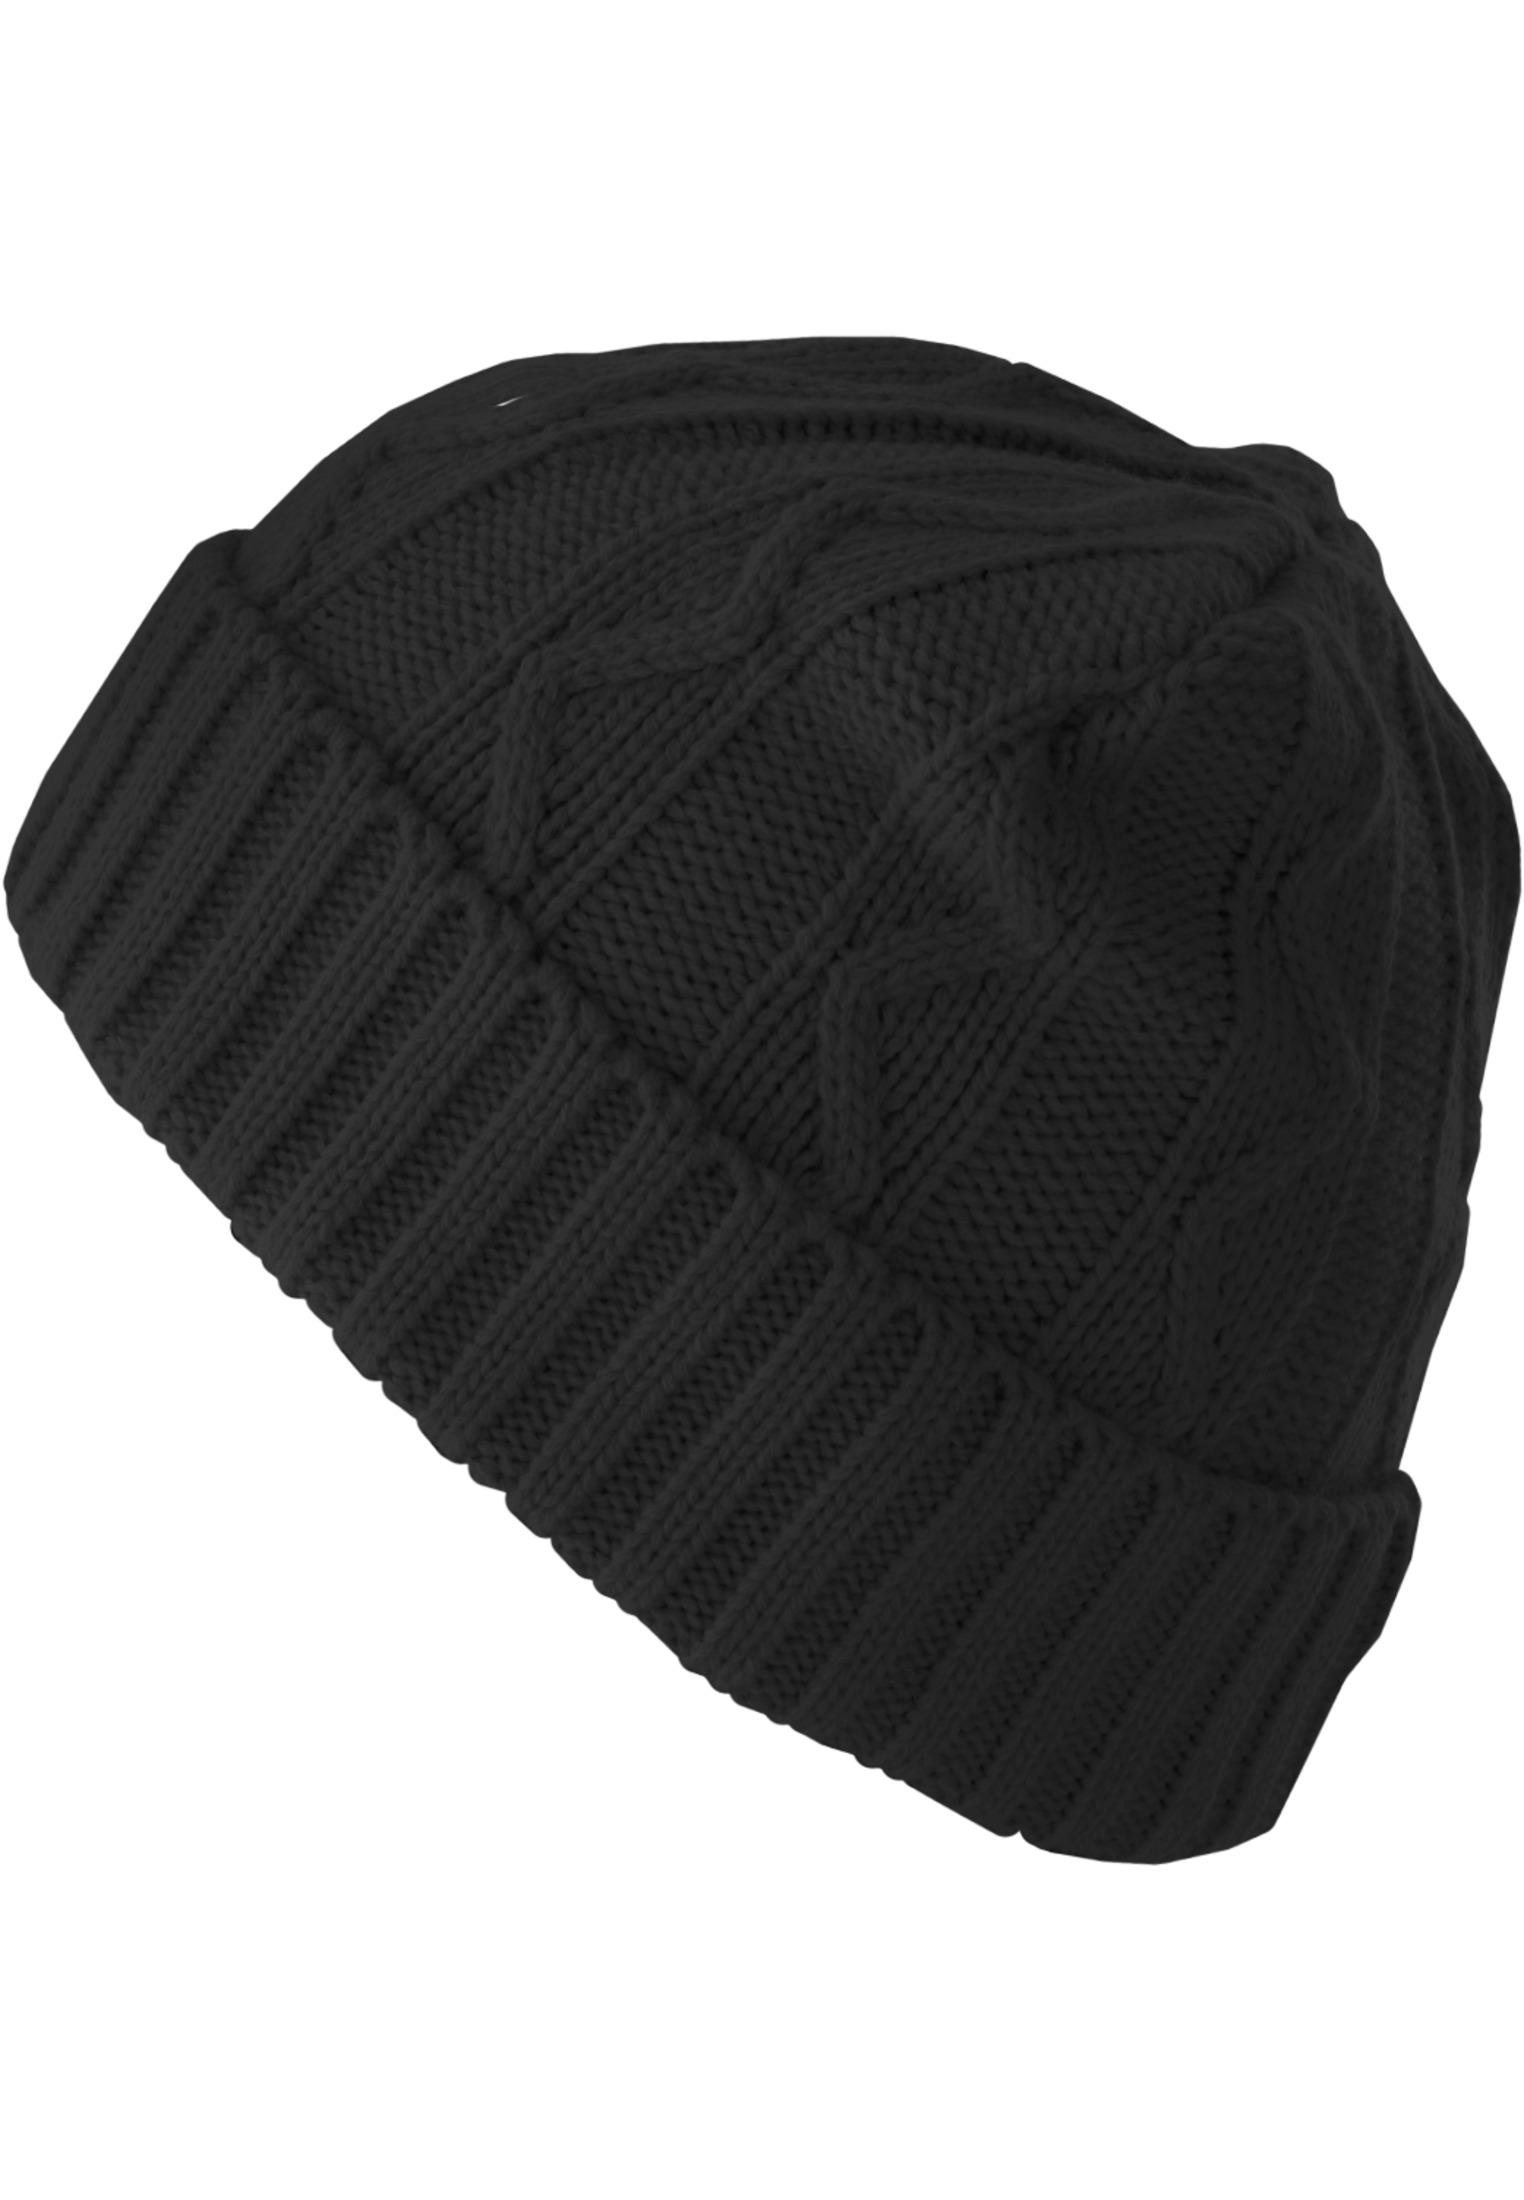 selber gestalten beanie cable flap cap. Black Bedroom Furniture Sets. Home Design Ideas